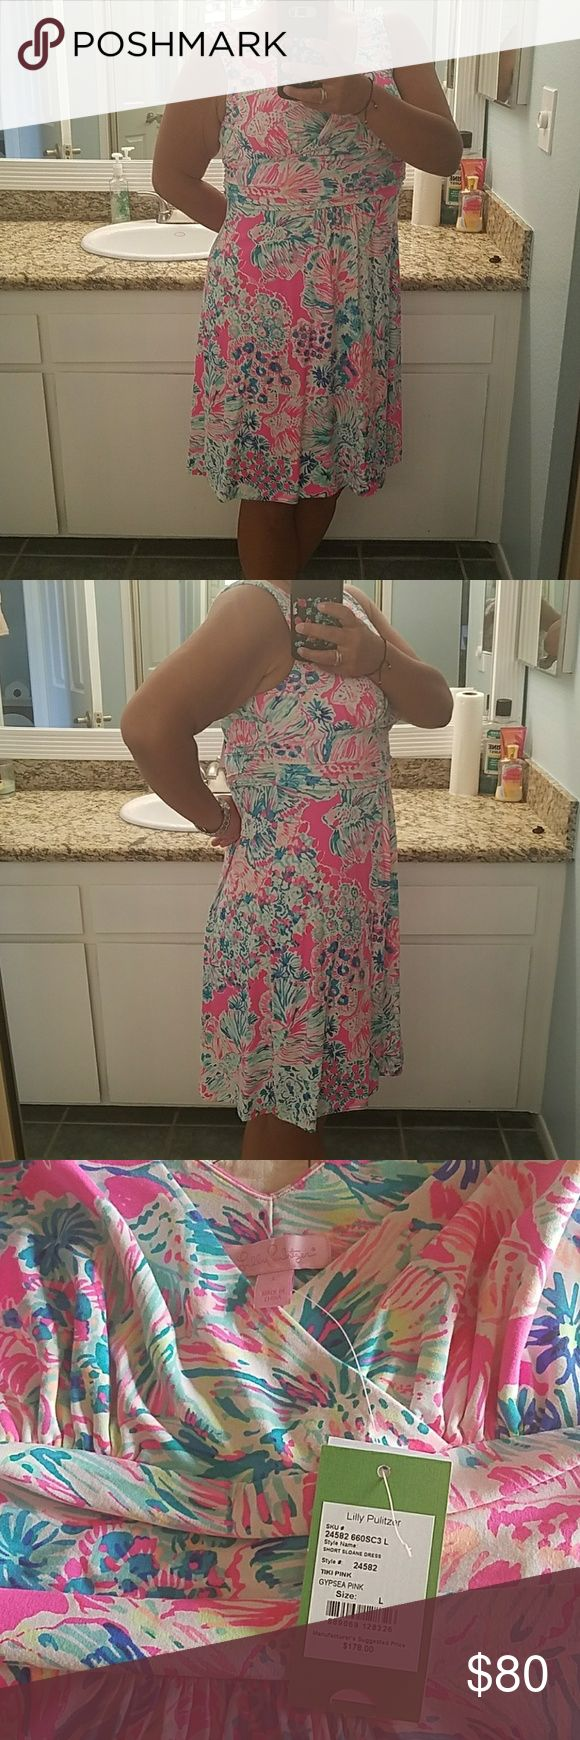 Lilly Pulitzer dress Beautiful summer dress, vibrant colors. Perfect for the beach. 96% rayon and 4% spandex. This is the Tiki Pink dress style # 24585 Lilly Pulitzer Dresses Mini